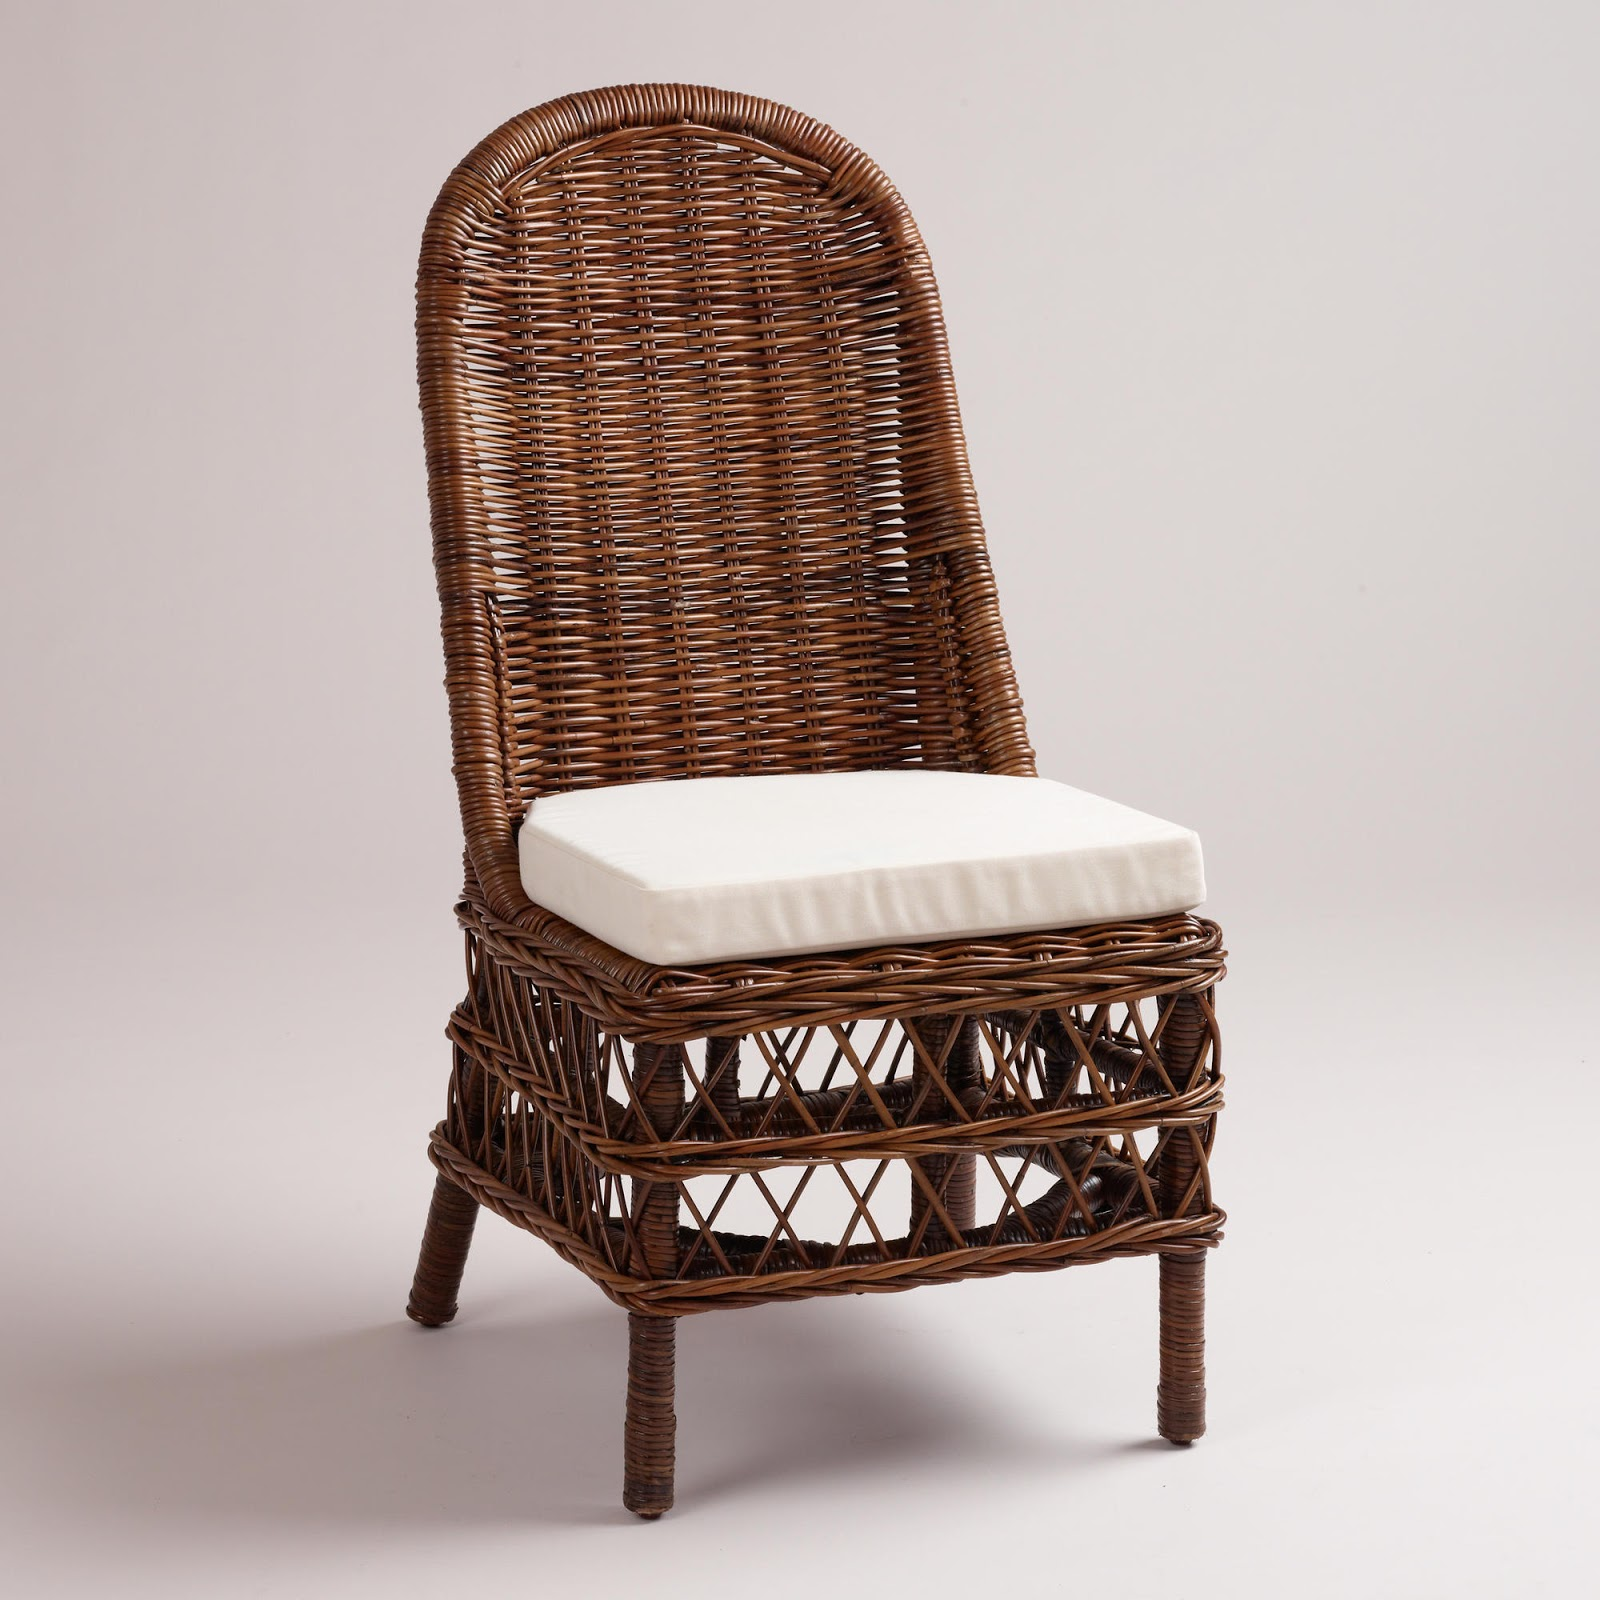 Rattan Dining Chairs: Vignette Design: Musical (Rattan) Chairs